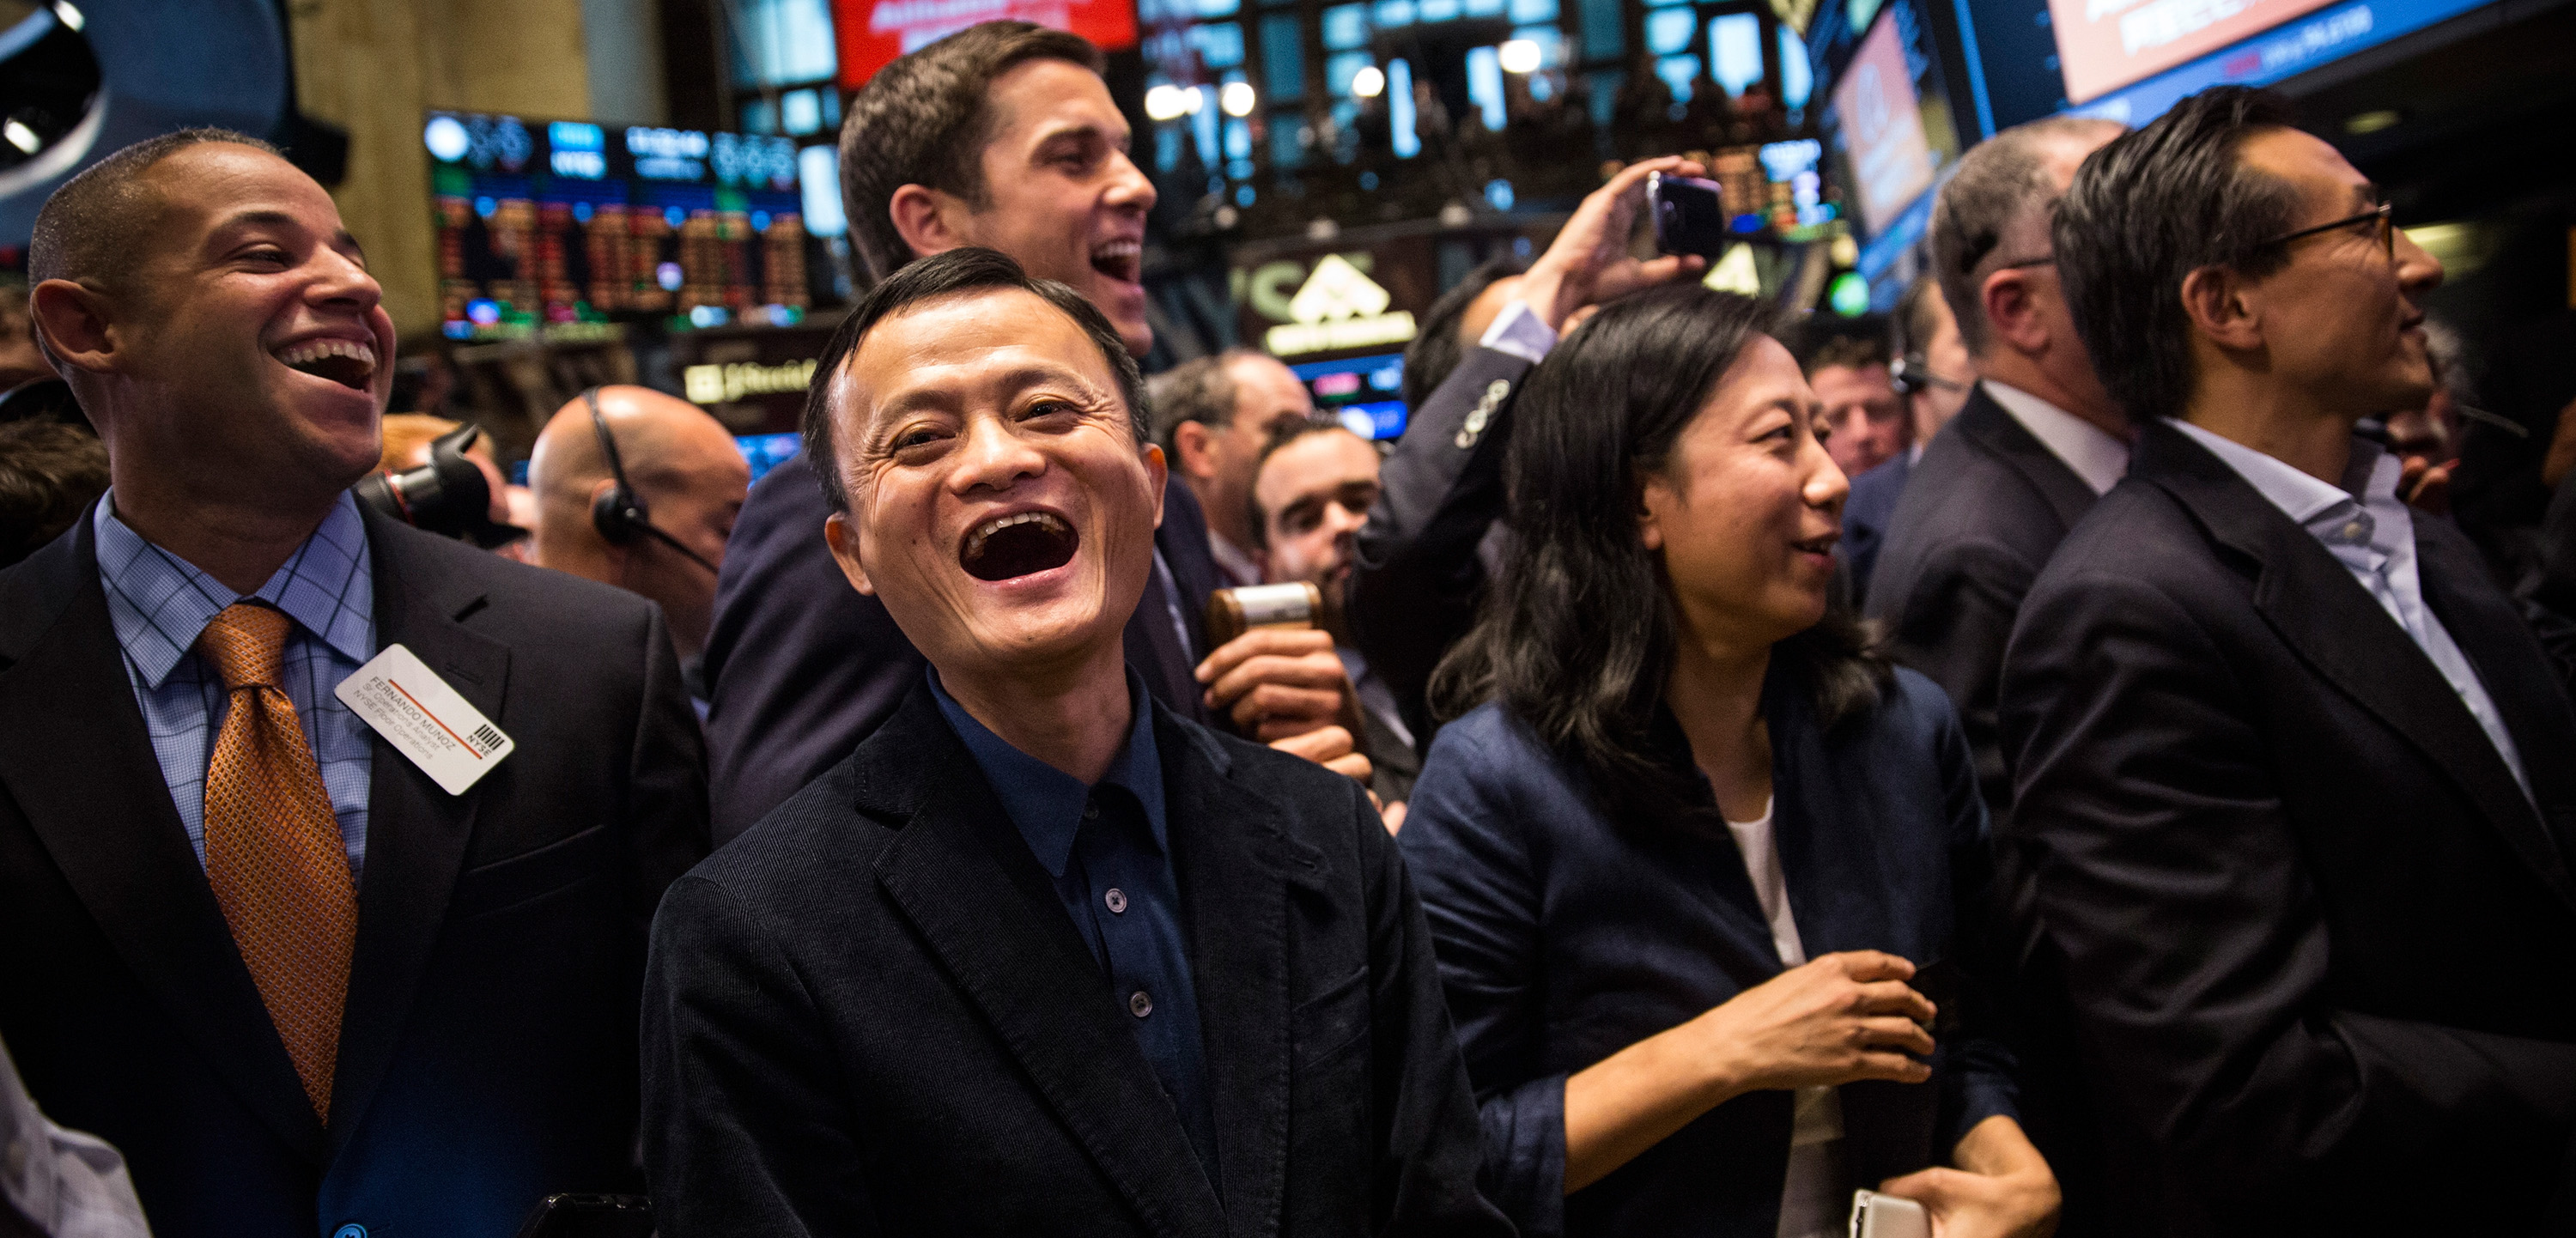 Founder and Executive Chairman of Alibaba Group Jack Ma (L) attends the company's initial price offering (IPO) at the New York Stock Exchange on September 19, 2014 in New York City.